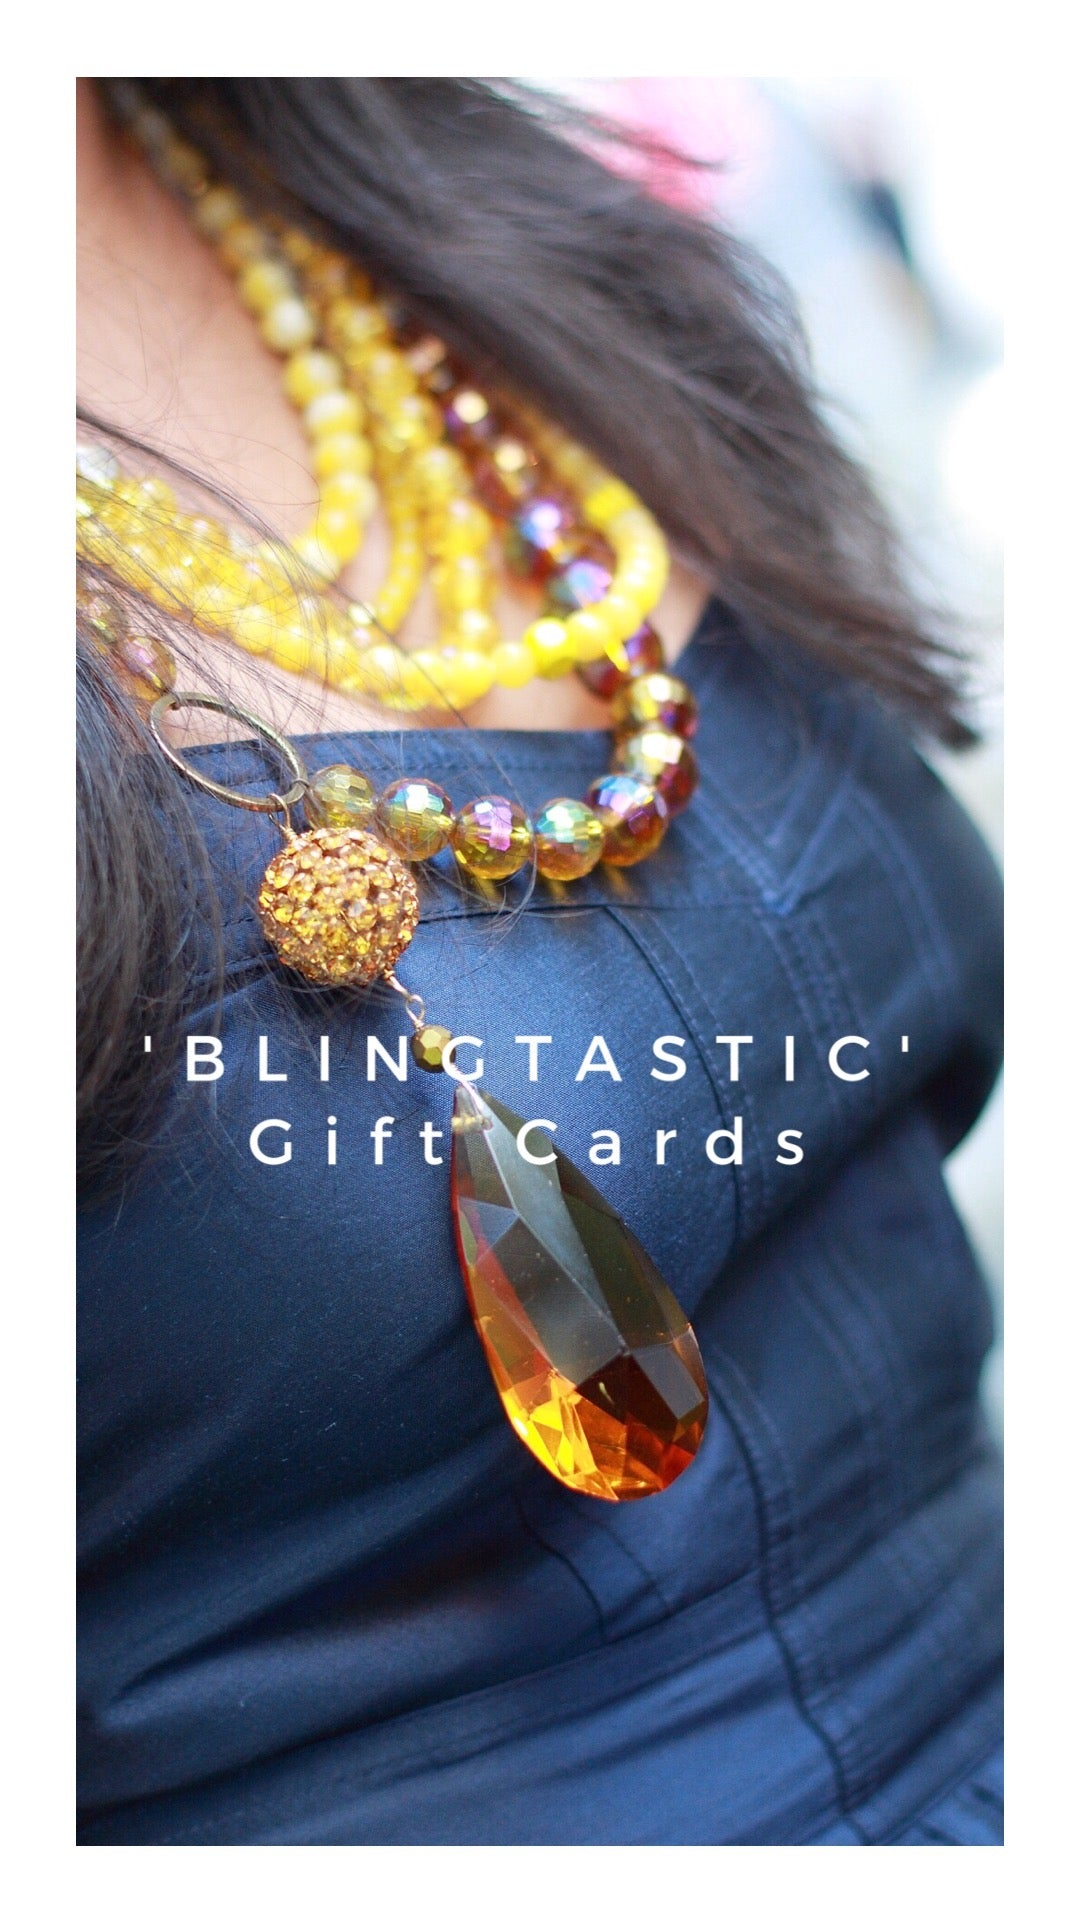 'Blingtastic' Gift Cards